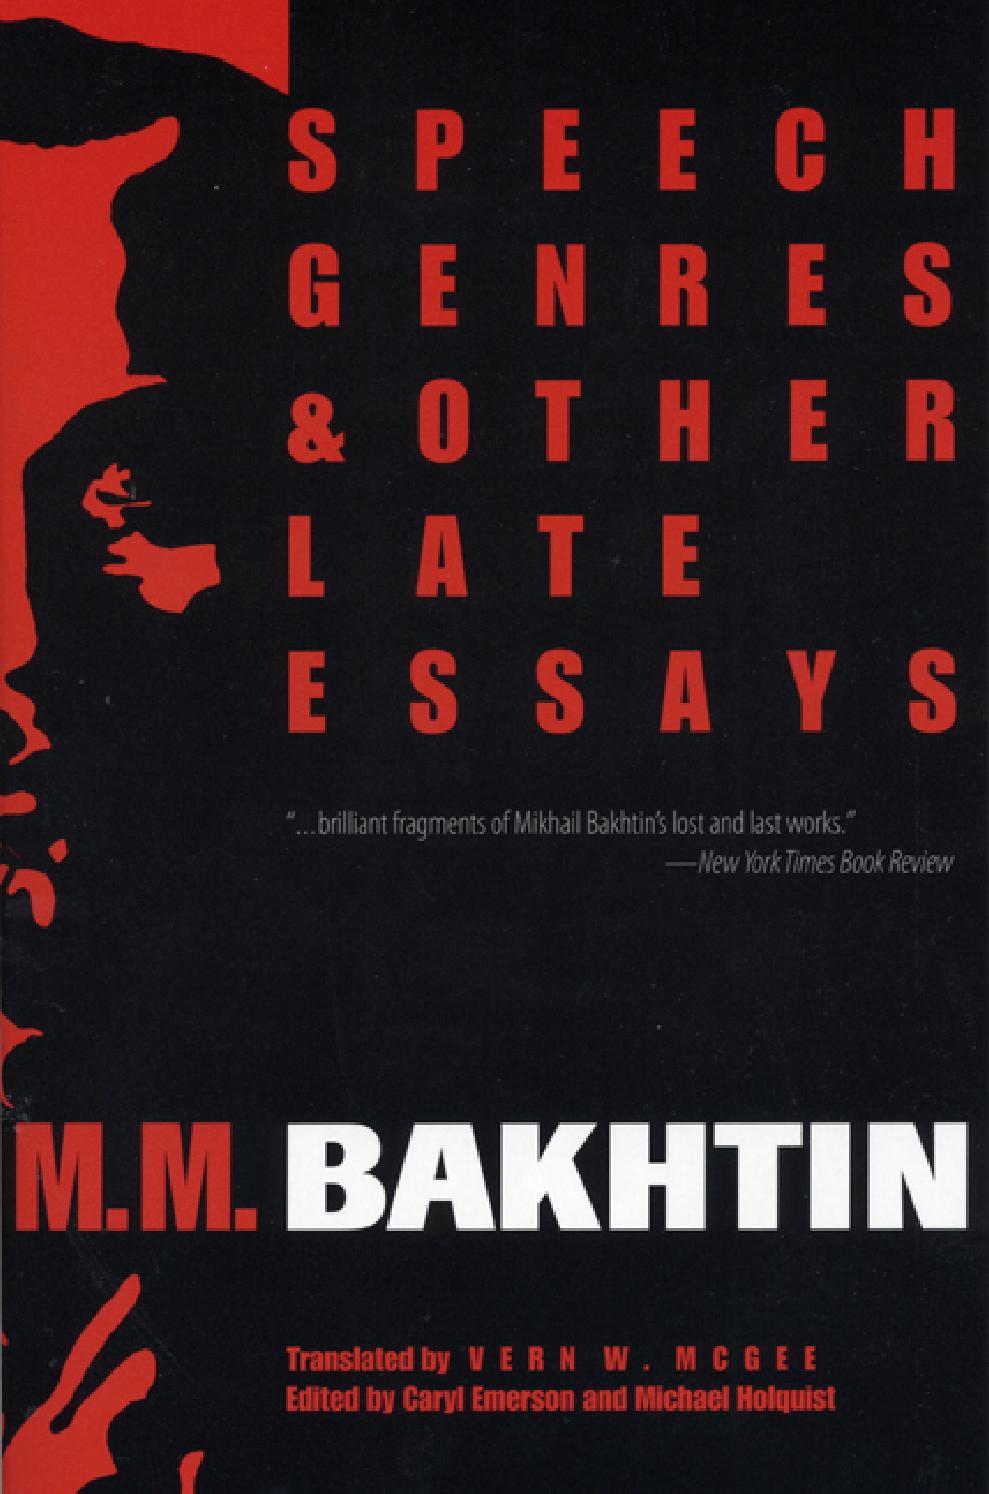 essays by bakhtin Mikhail bakhtin (1895-1975) is one of the preeminent figures in twentieth-century philosophical thought art and answerability contains three of his early essays from the years following the russian revolution, when bakhtin and other intellectuals eagerly participated in the debates, lectures, demonstrations, and manifesto writing of the period.